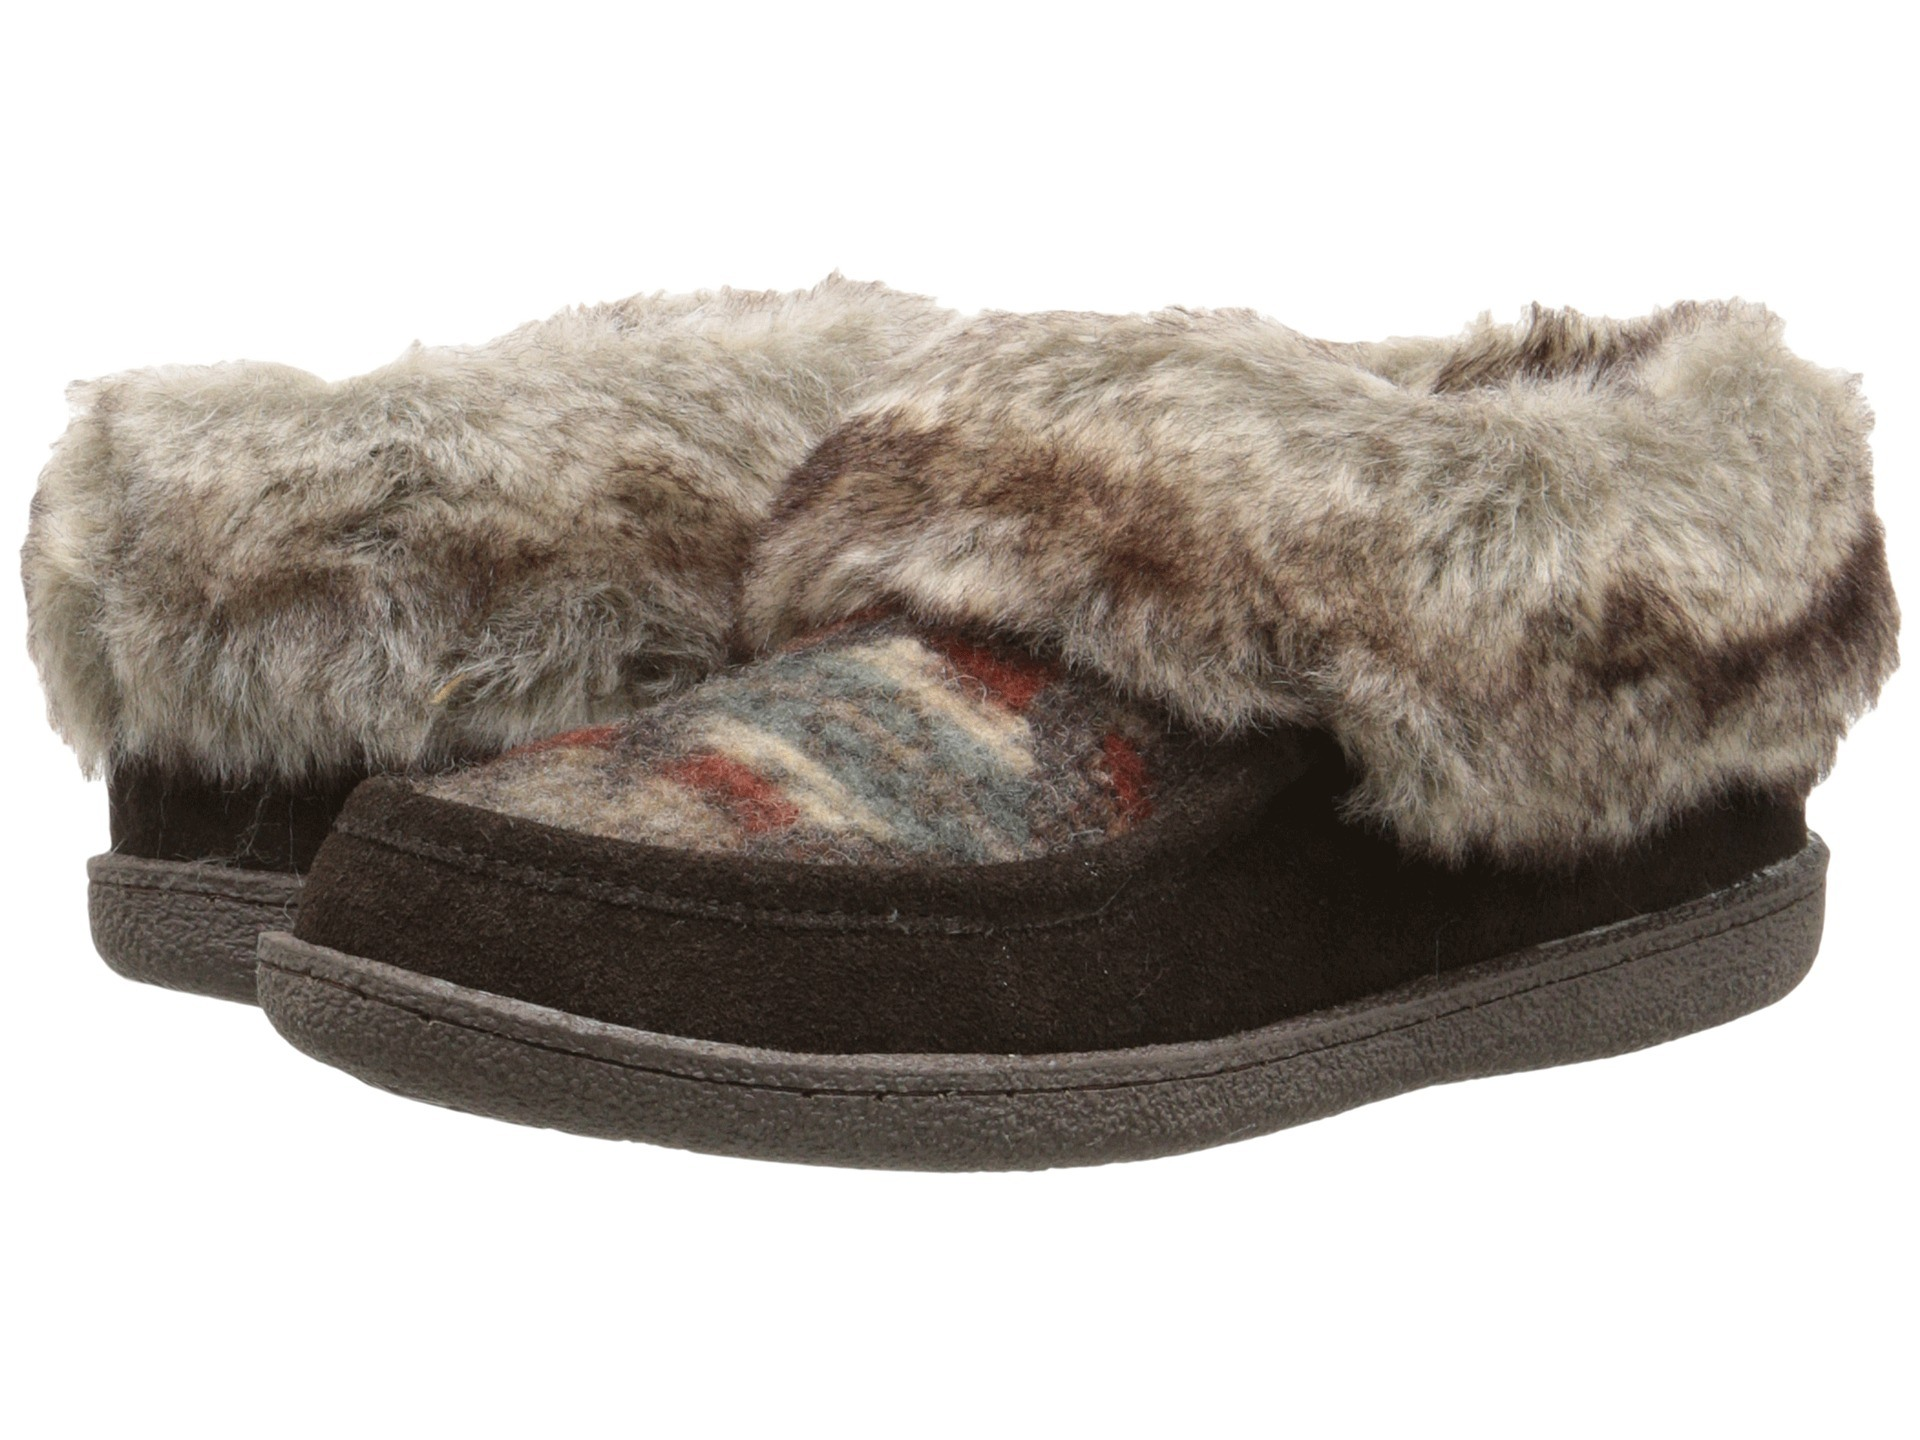 Warm Max Side Stitch TPR Sole Memory Foam Slipper